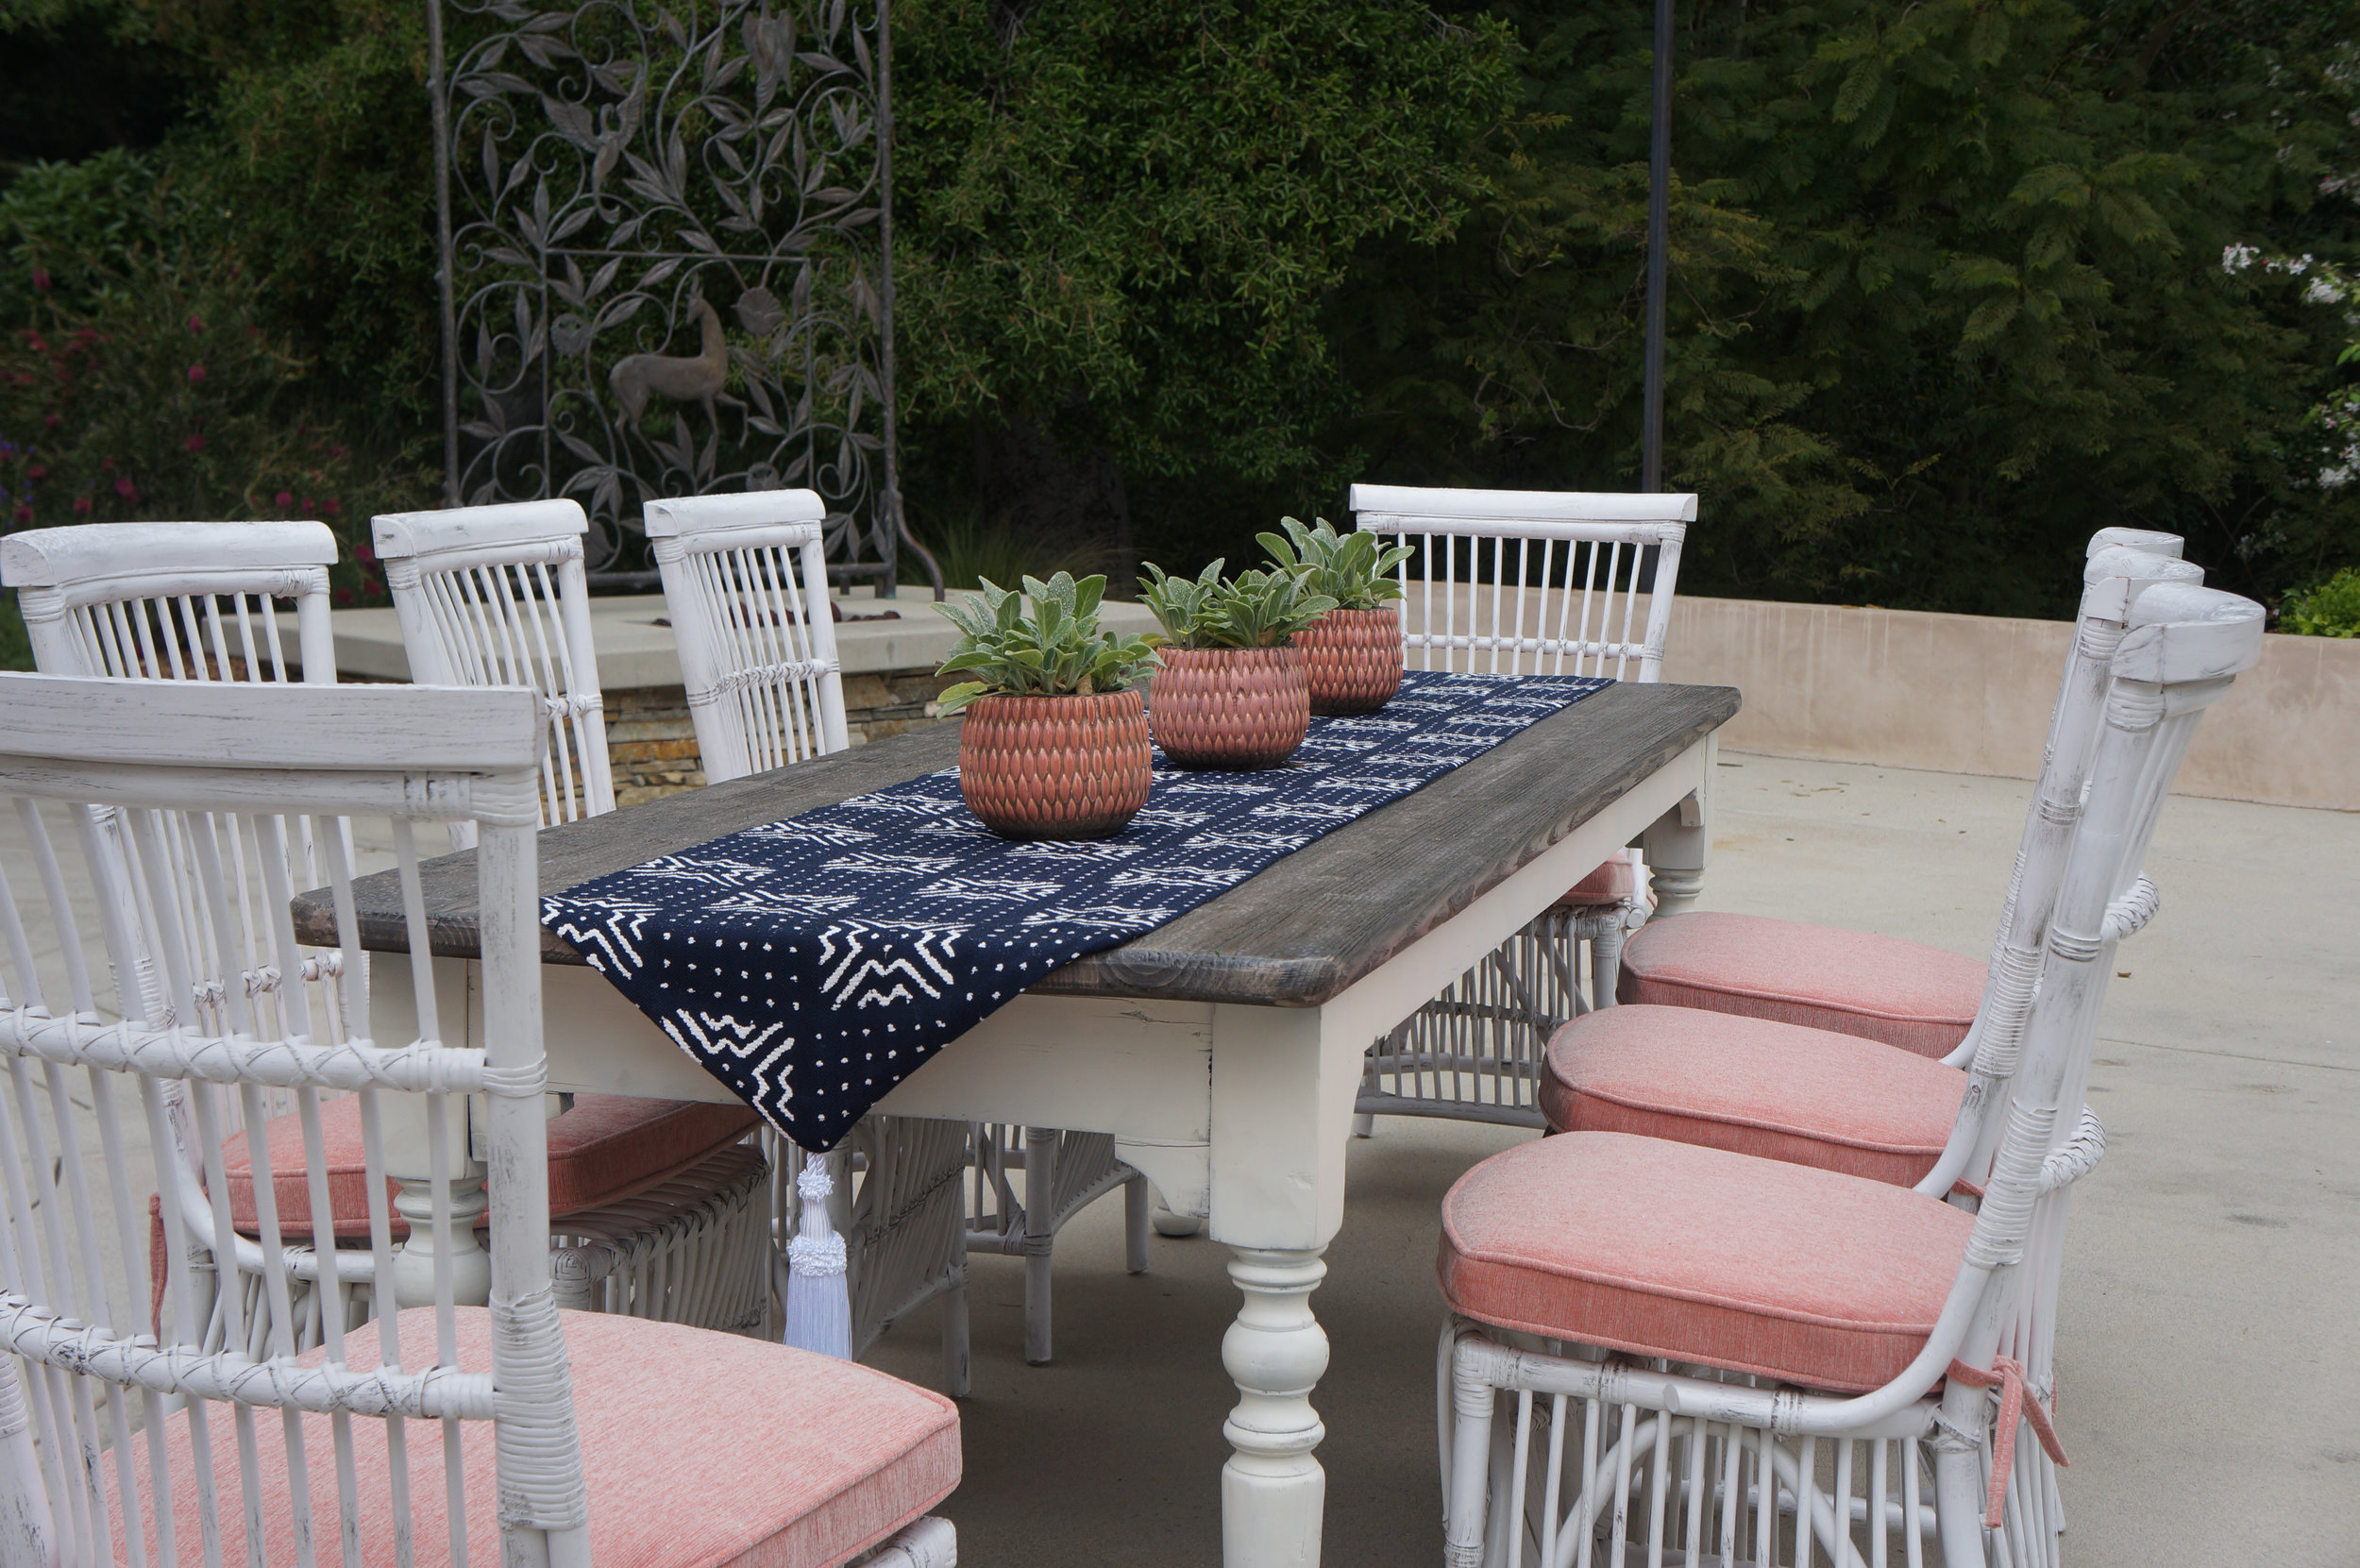 Outdoor dining area without styling